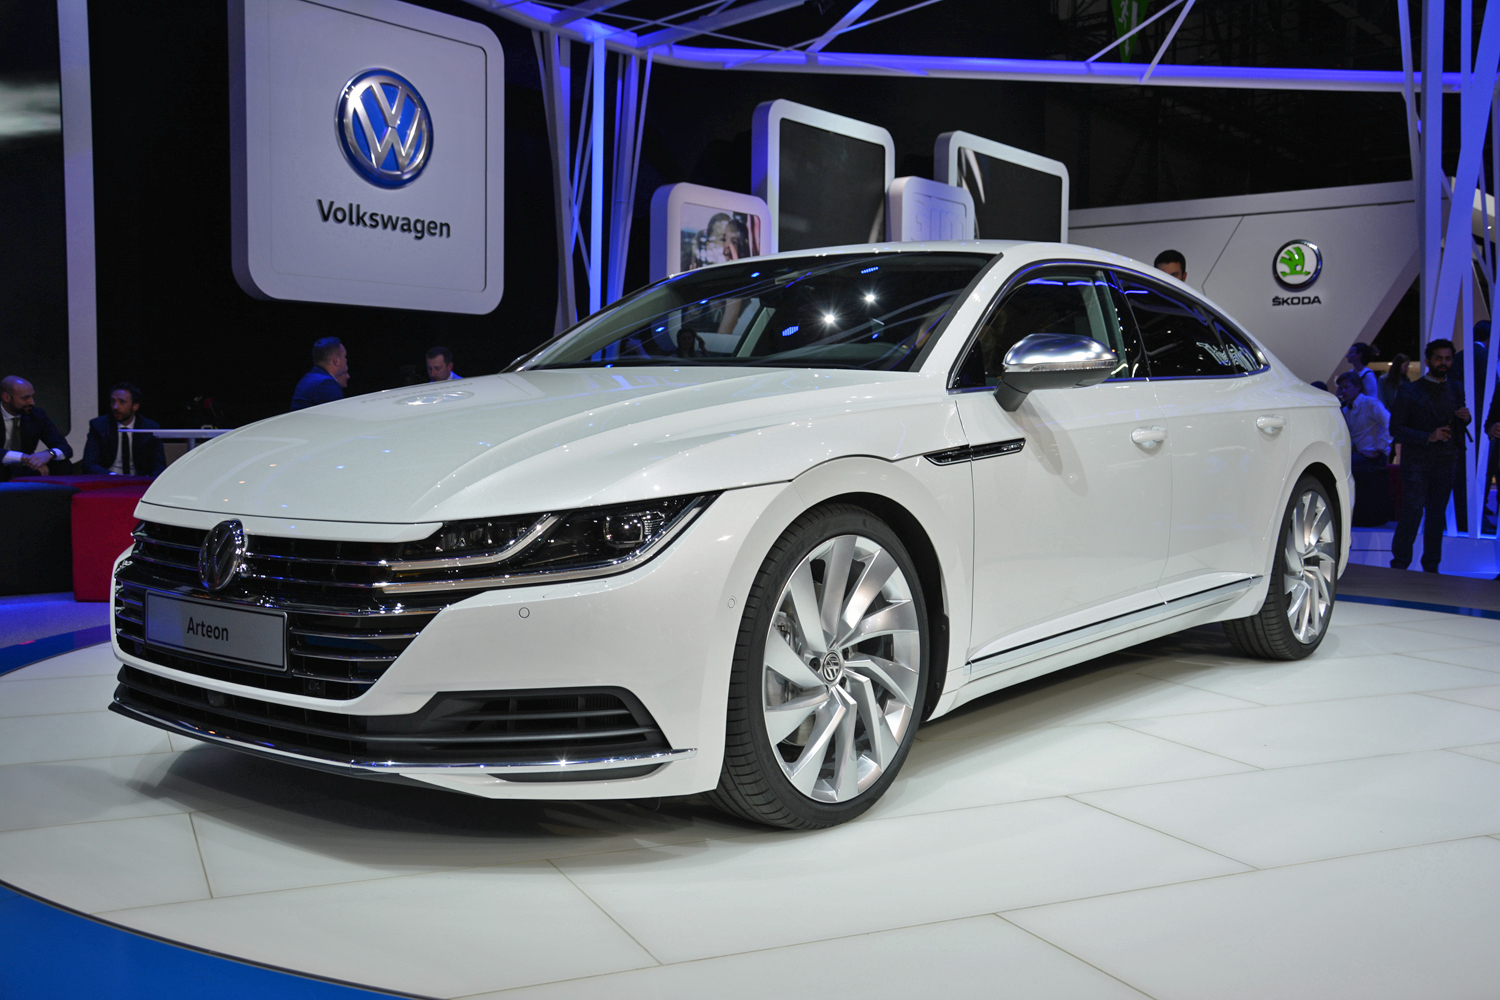 volkswagen 39 s arteon is a bold styling statement and a departure from the norm. Black Bedroom Furniture Sets. Home Design Ideas